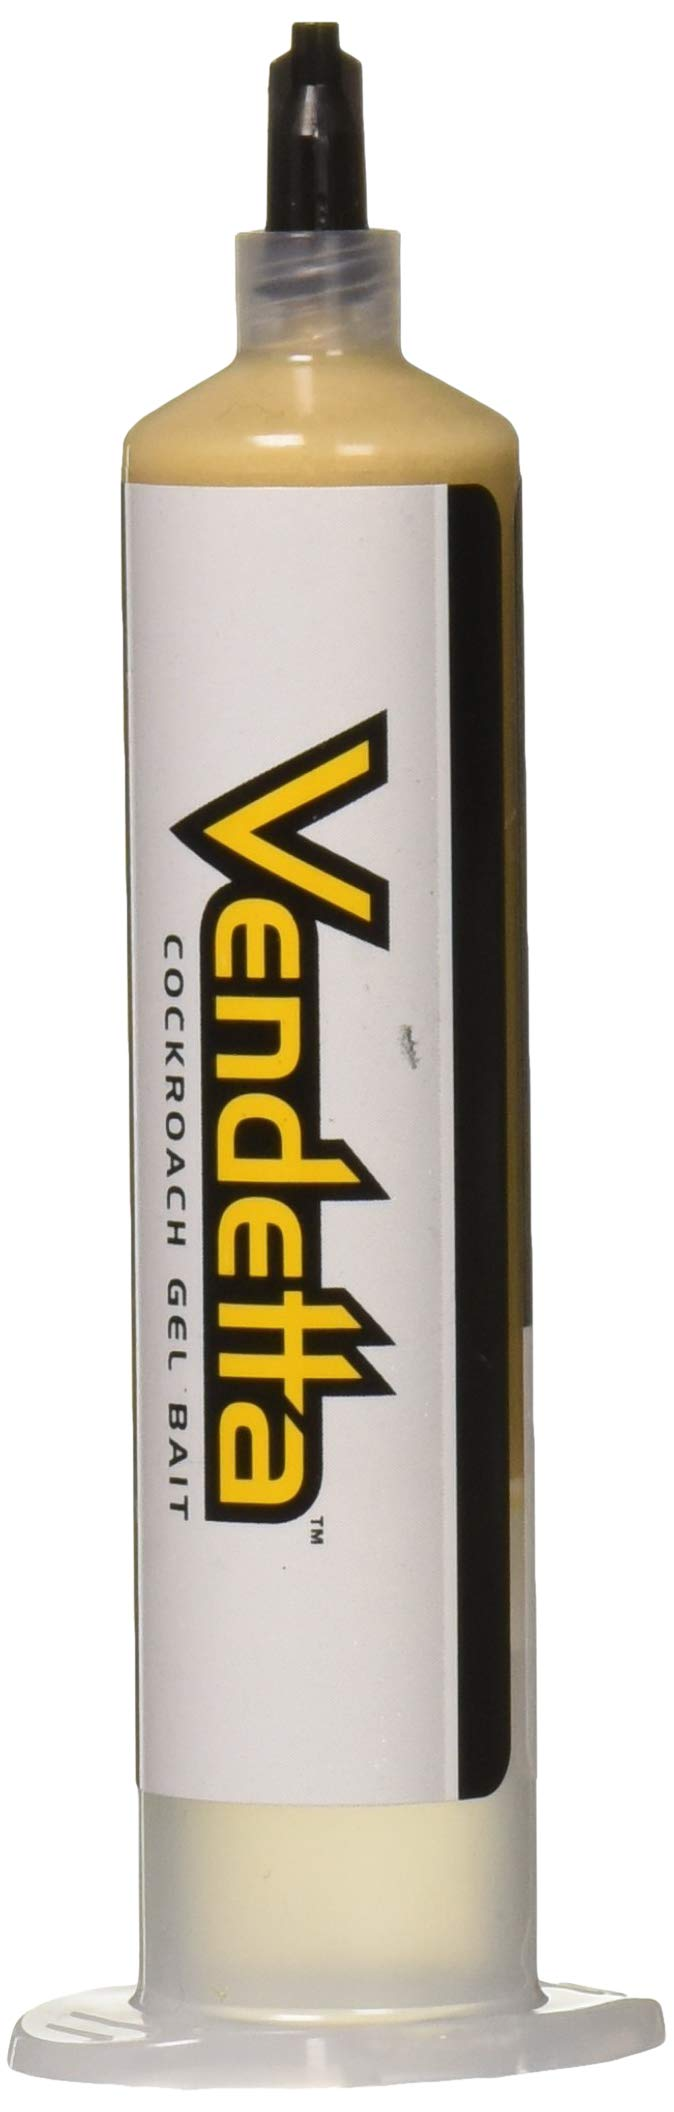 MGK - 2822 - Vendetta Cockroach Gel Bait - Insecticide - 4 x 30G by MGK